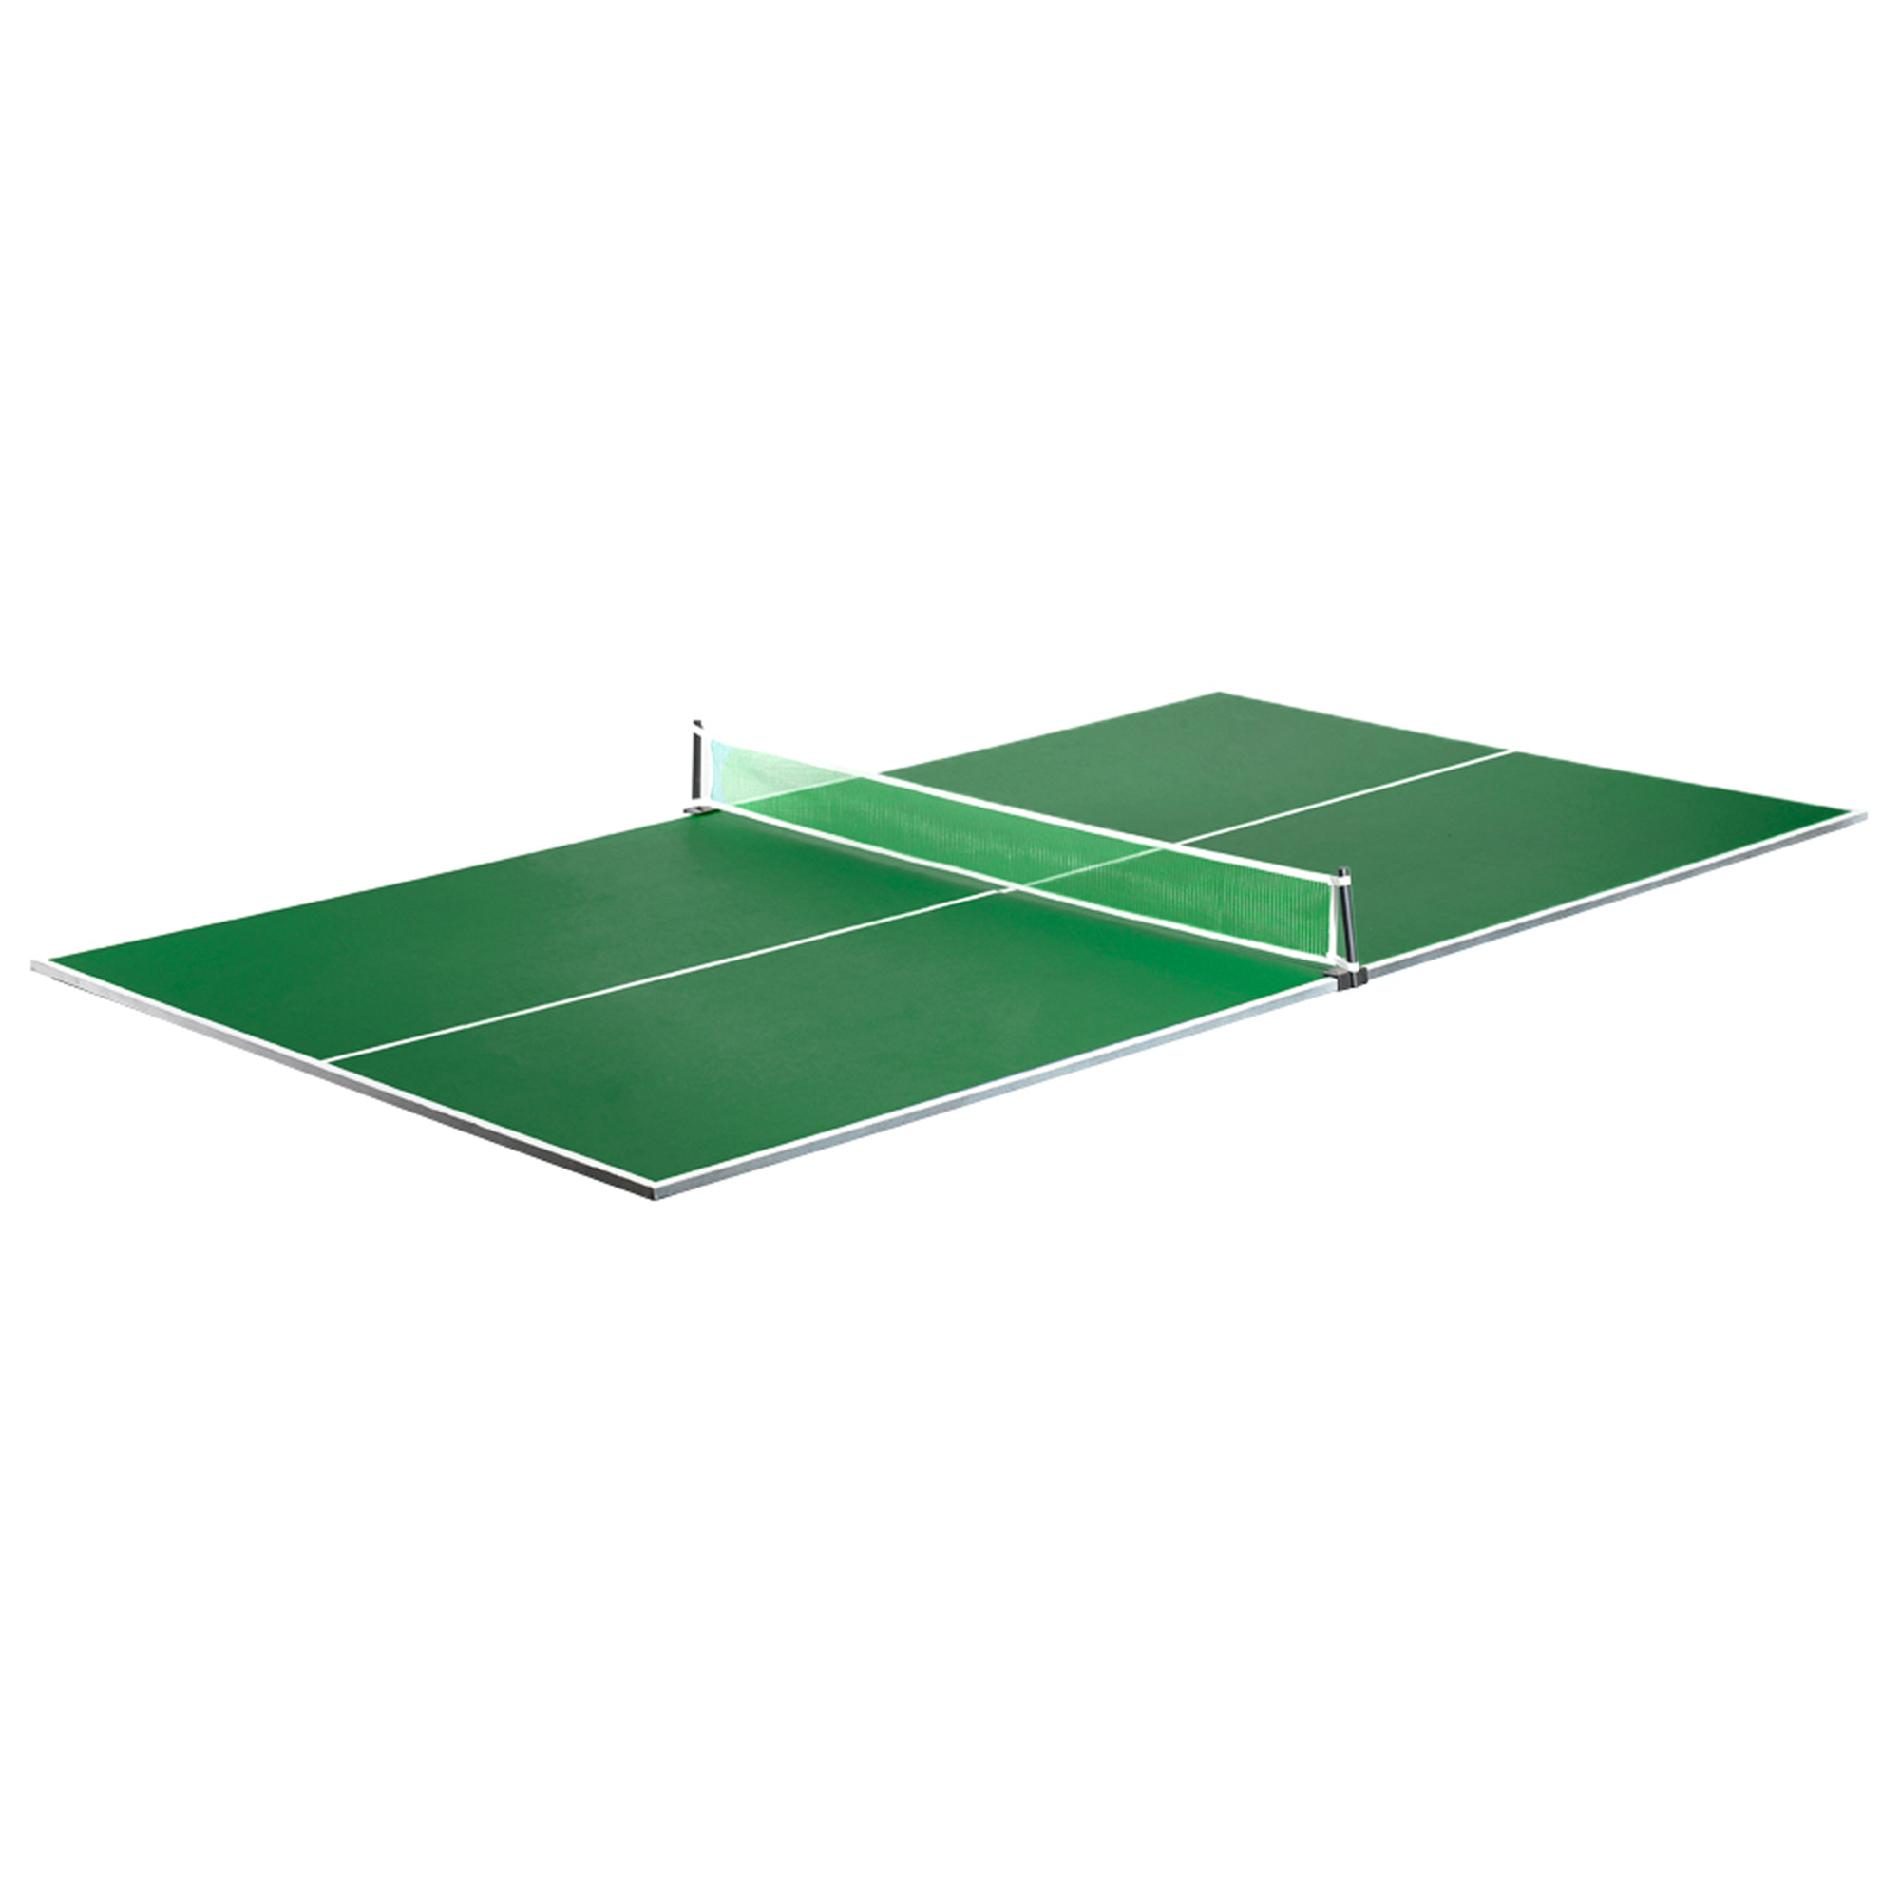 Hathaway™ Quick Table Tennis Conversion Top Green